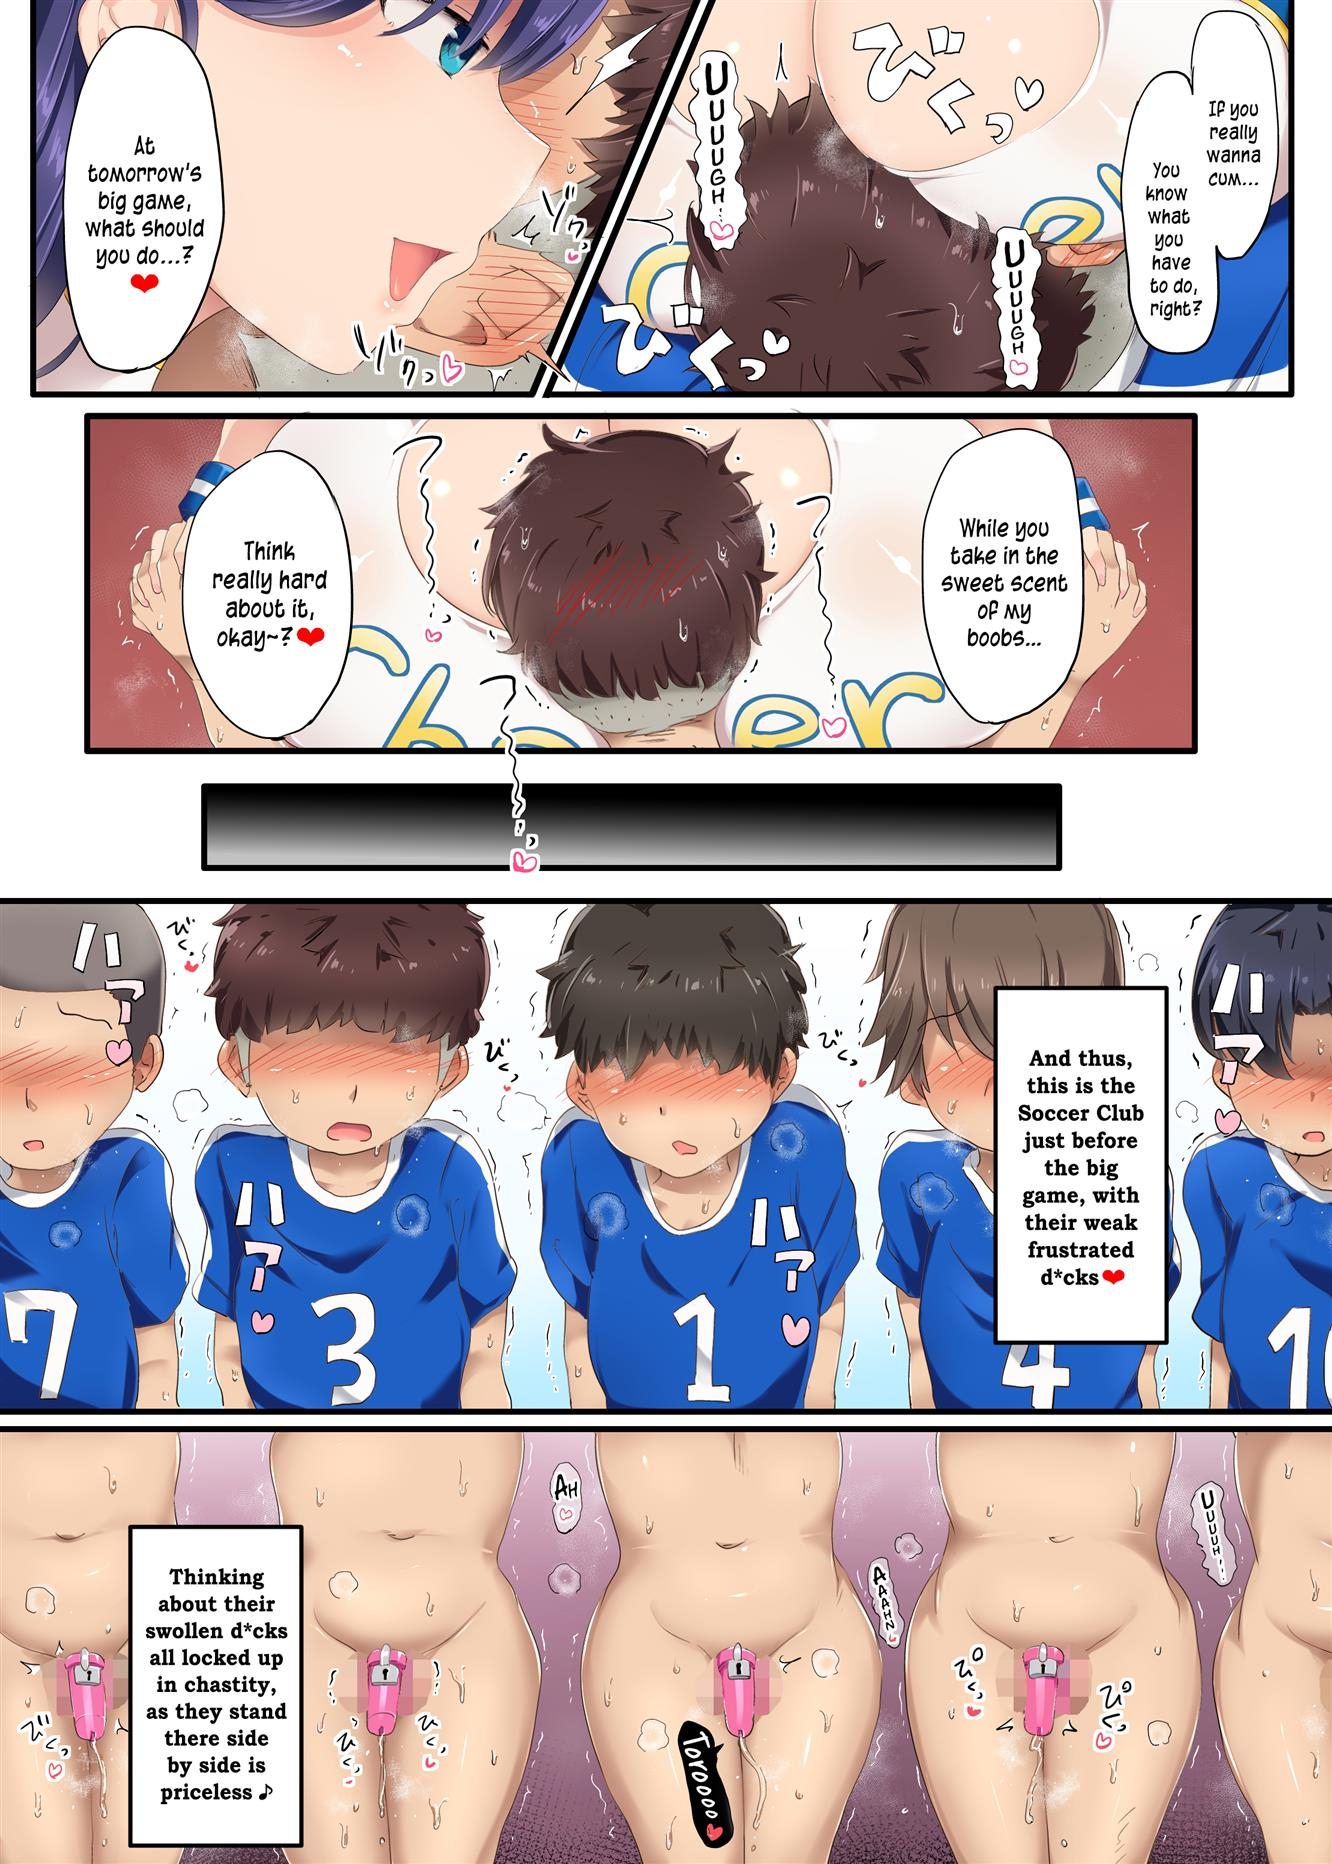 Guide on How to Completely Defeat Boys ~Stories of the Soccer Club~ - Foto 31